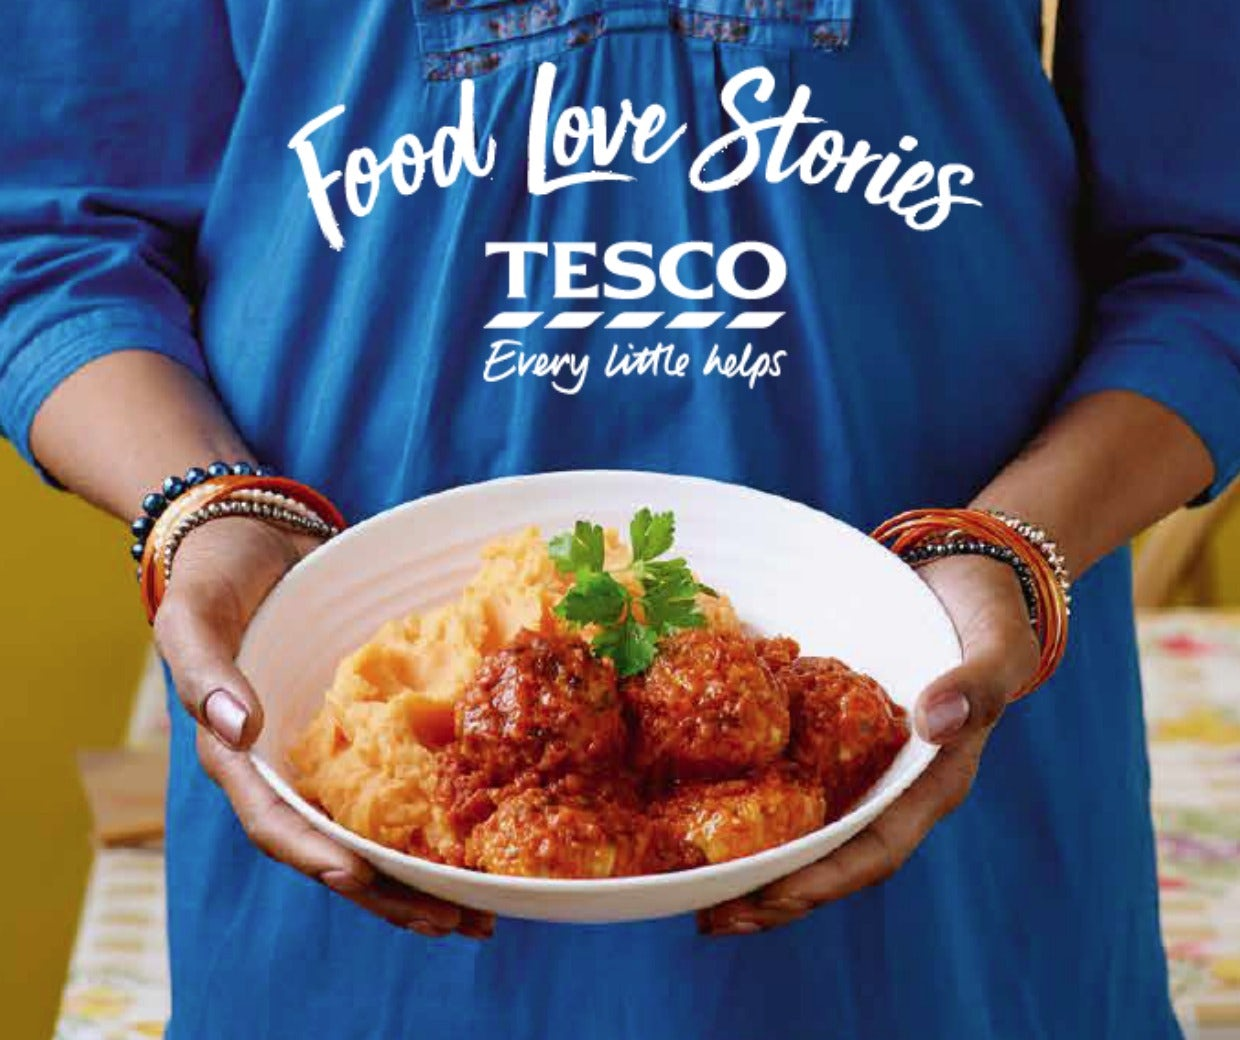 Tesco makes big change to how it talks about food in new ads forumfinder Images